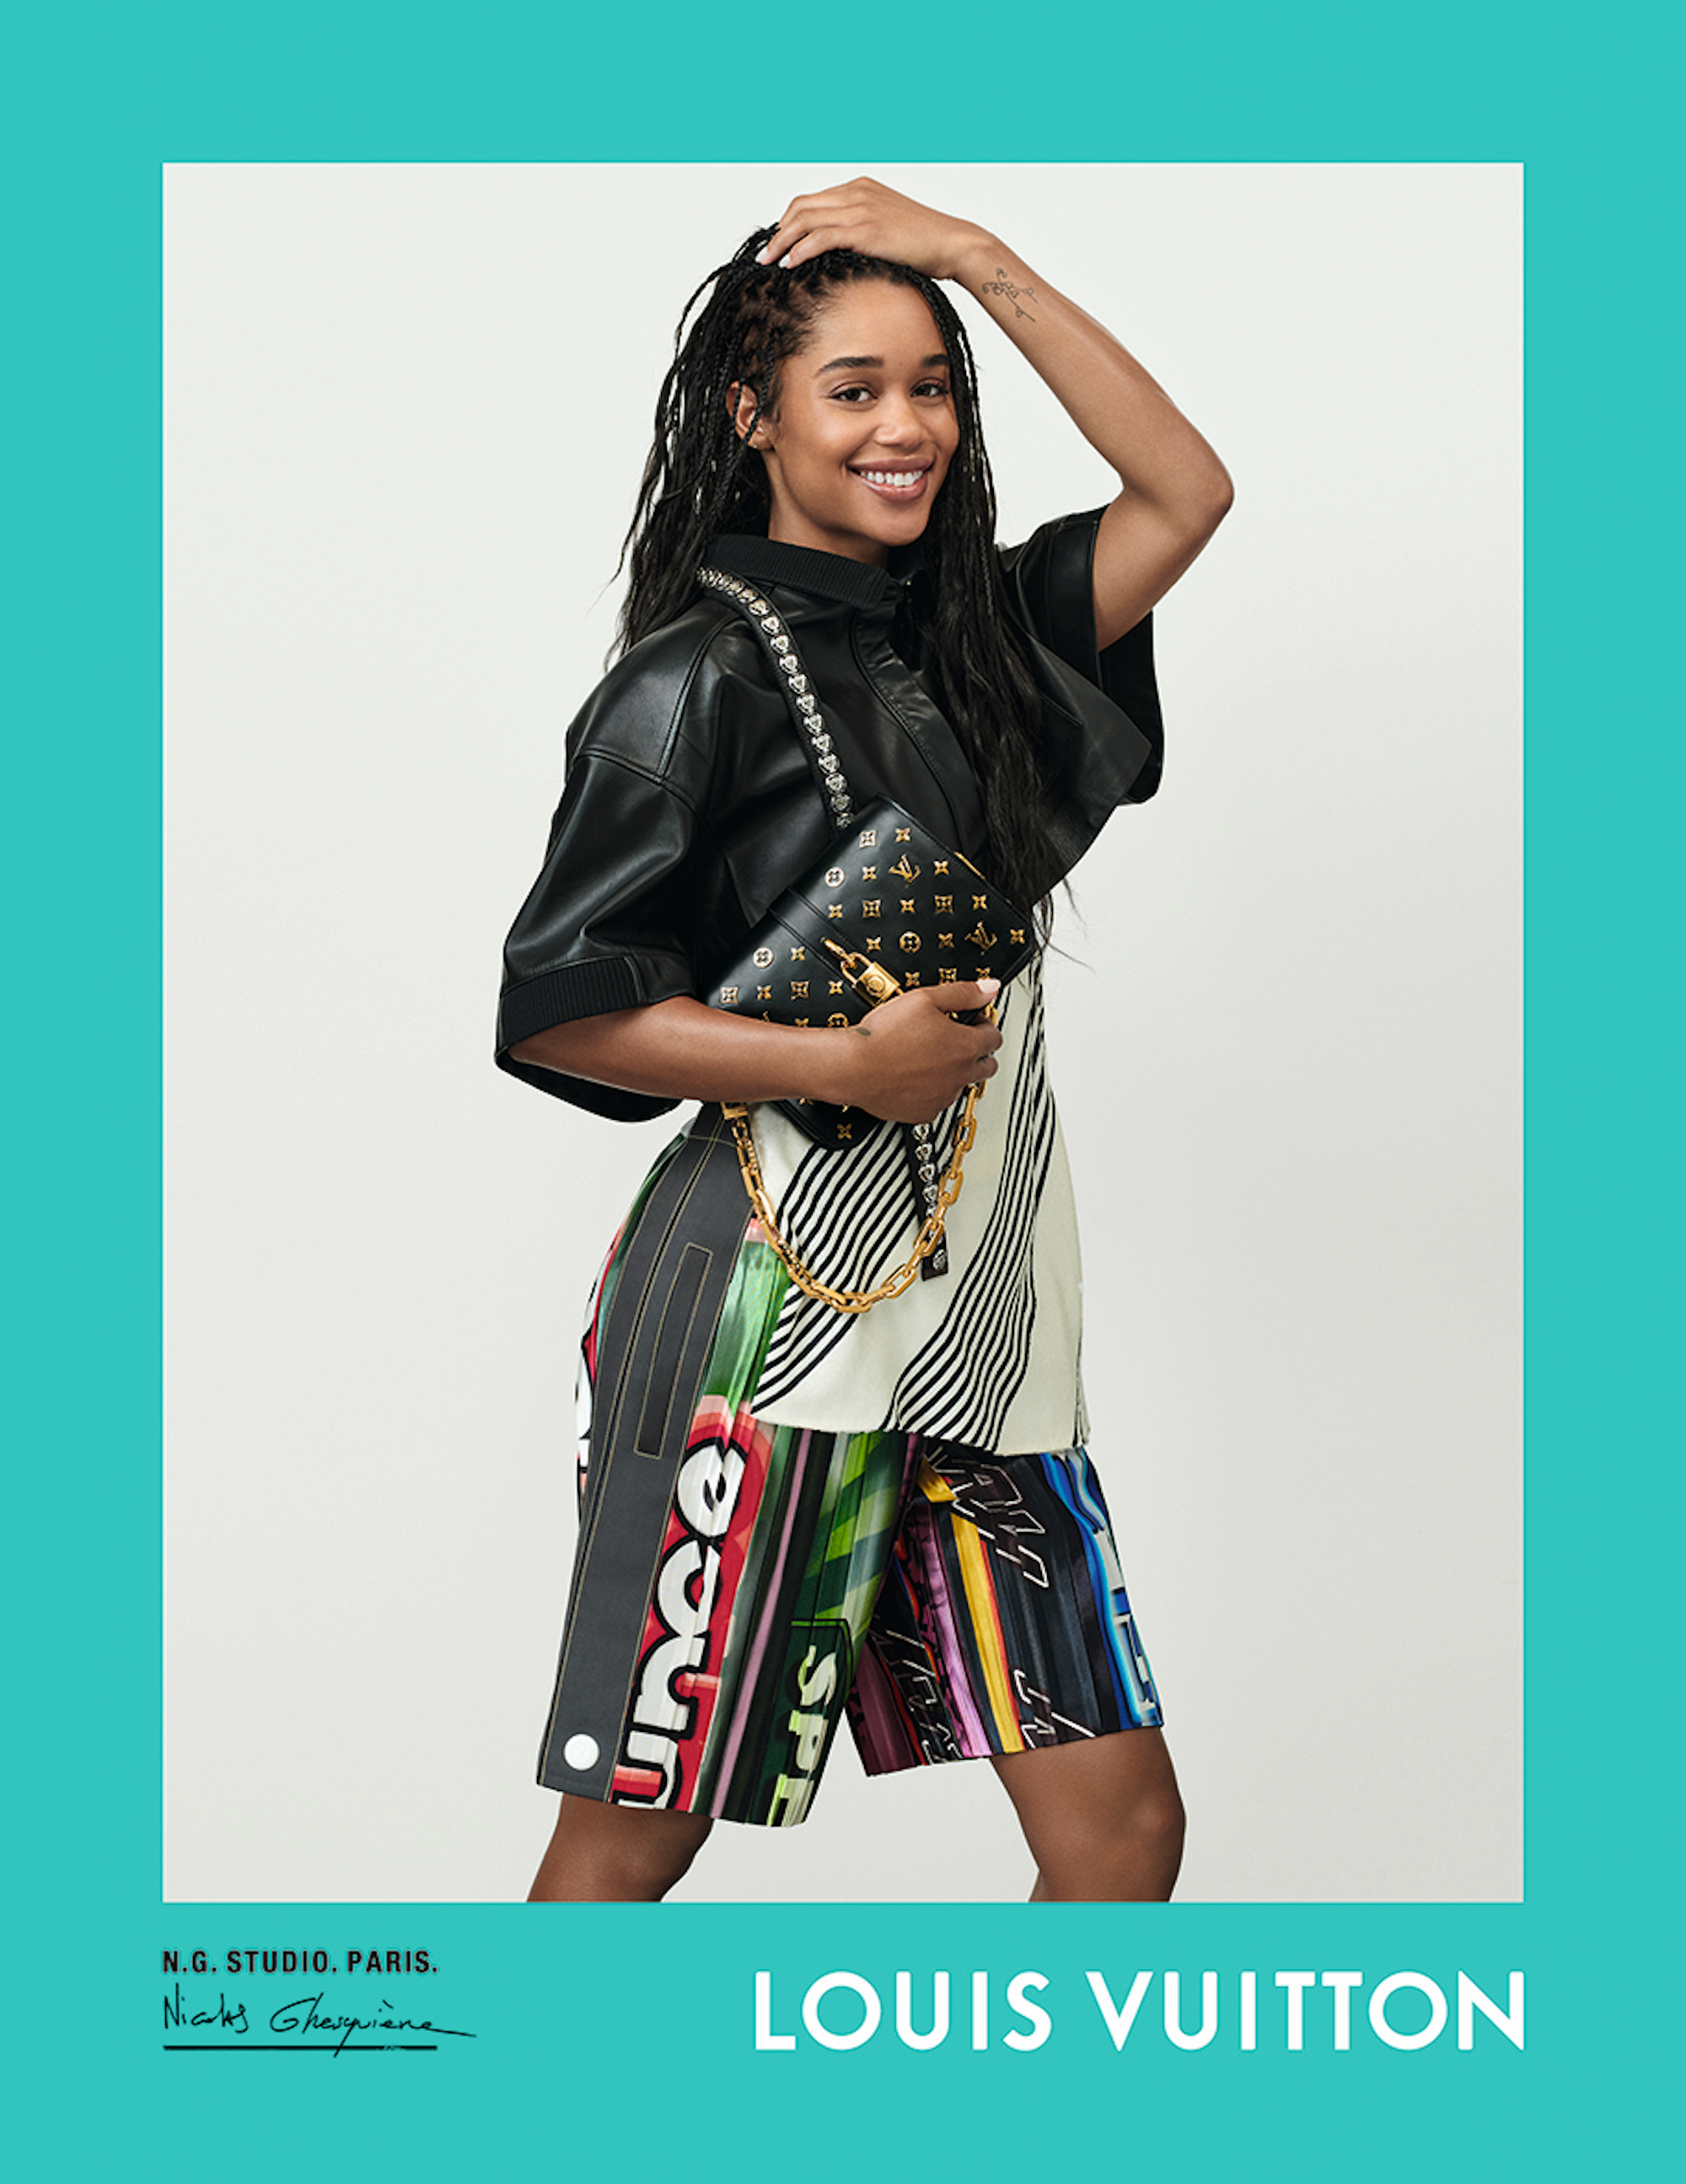 Louis Vuitton Spring Summer 2021 campaign, Nicolas Ghesquière, creative director, photographer, Laura Harrier